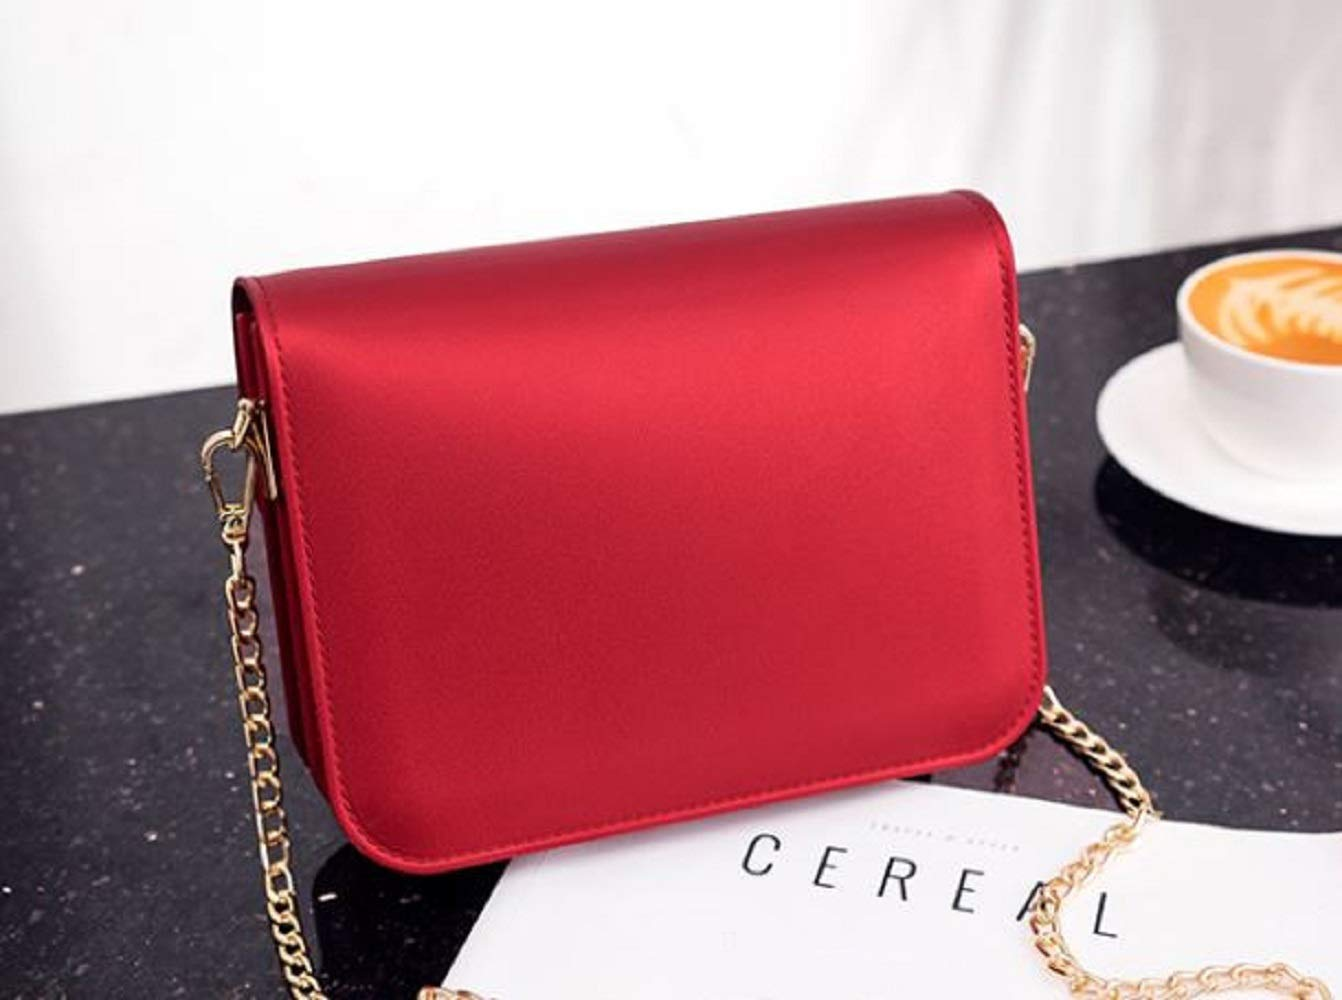 LF-JP PVC Evening bags for women [ Designer Clutch with Chain ] Shoulder Bag Cross body Purse (Red) by LF-JP (Image #7)